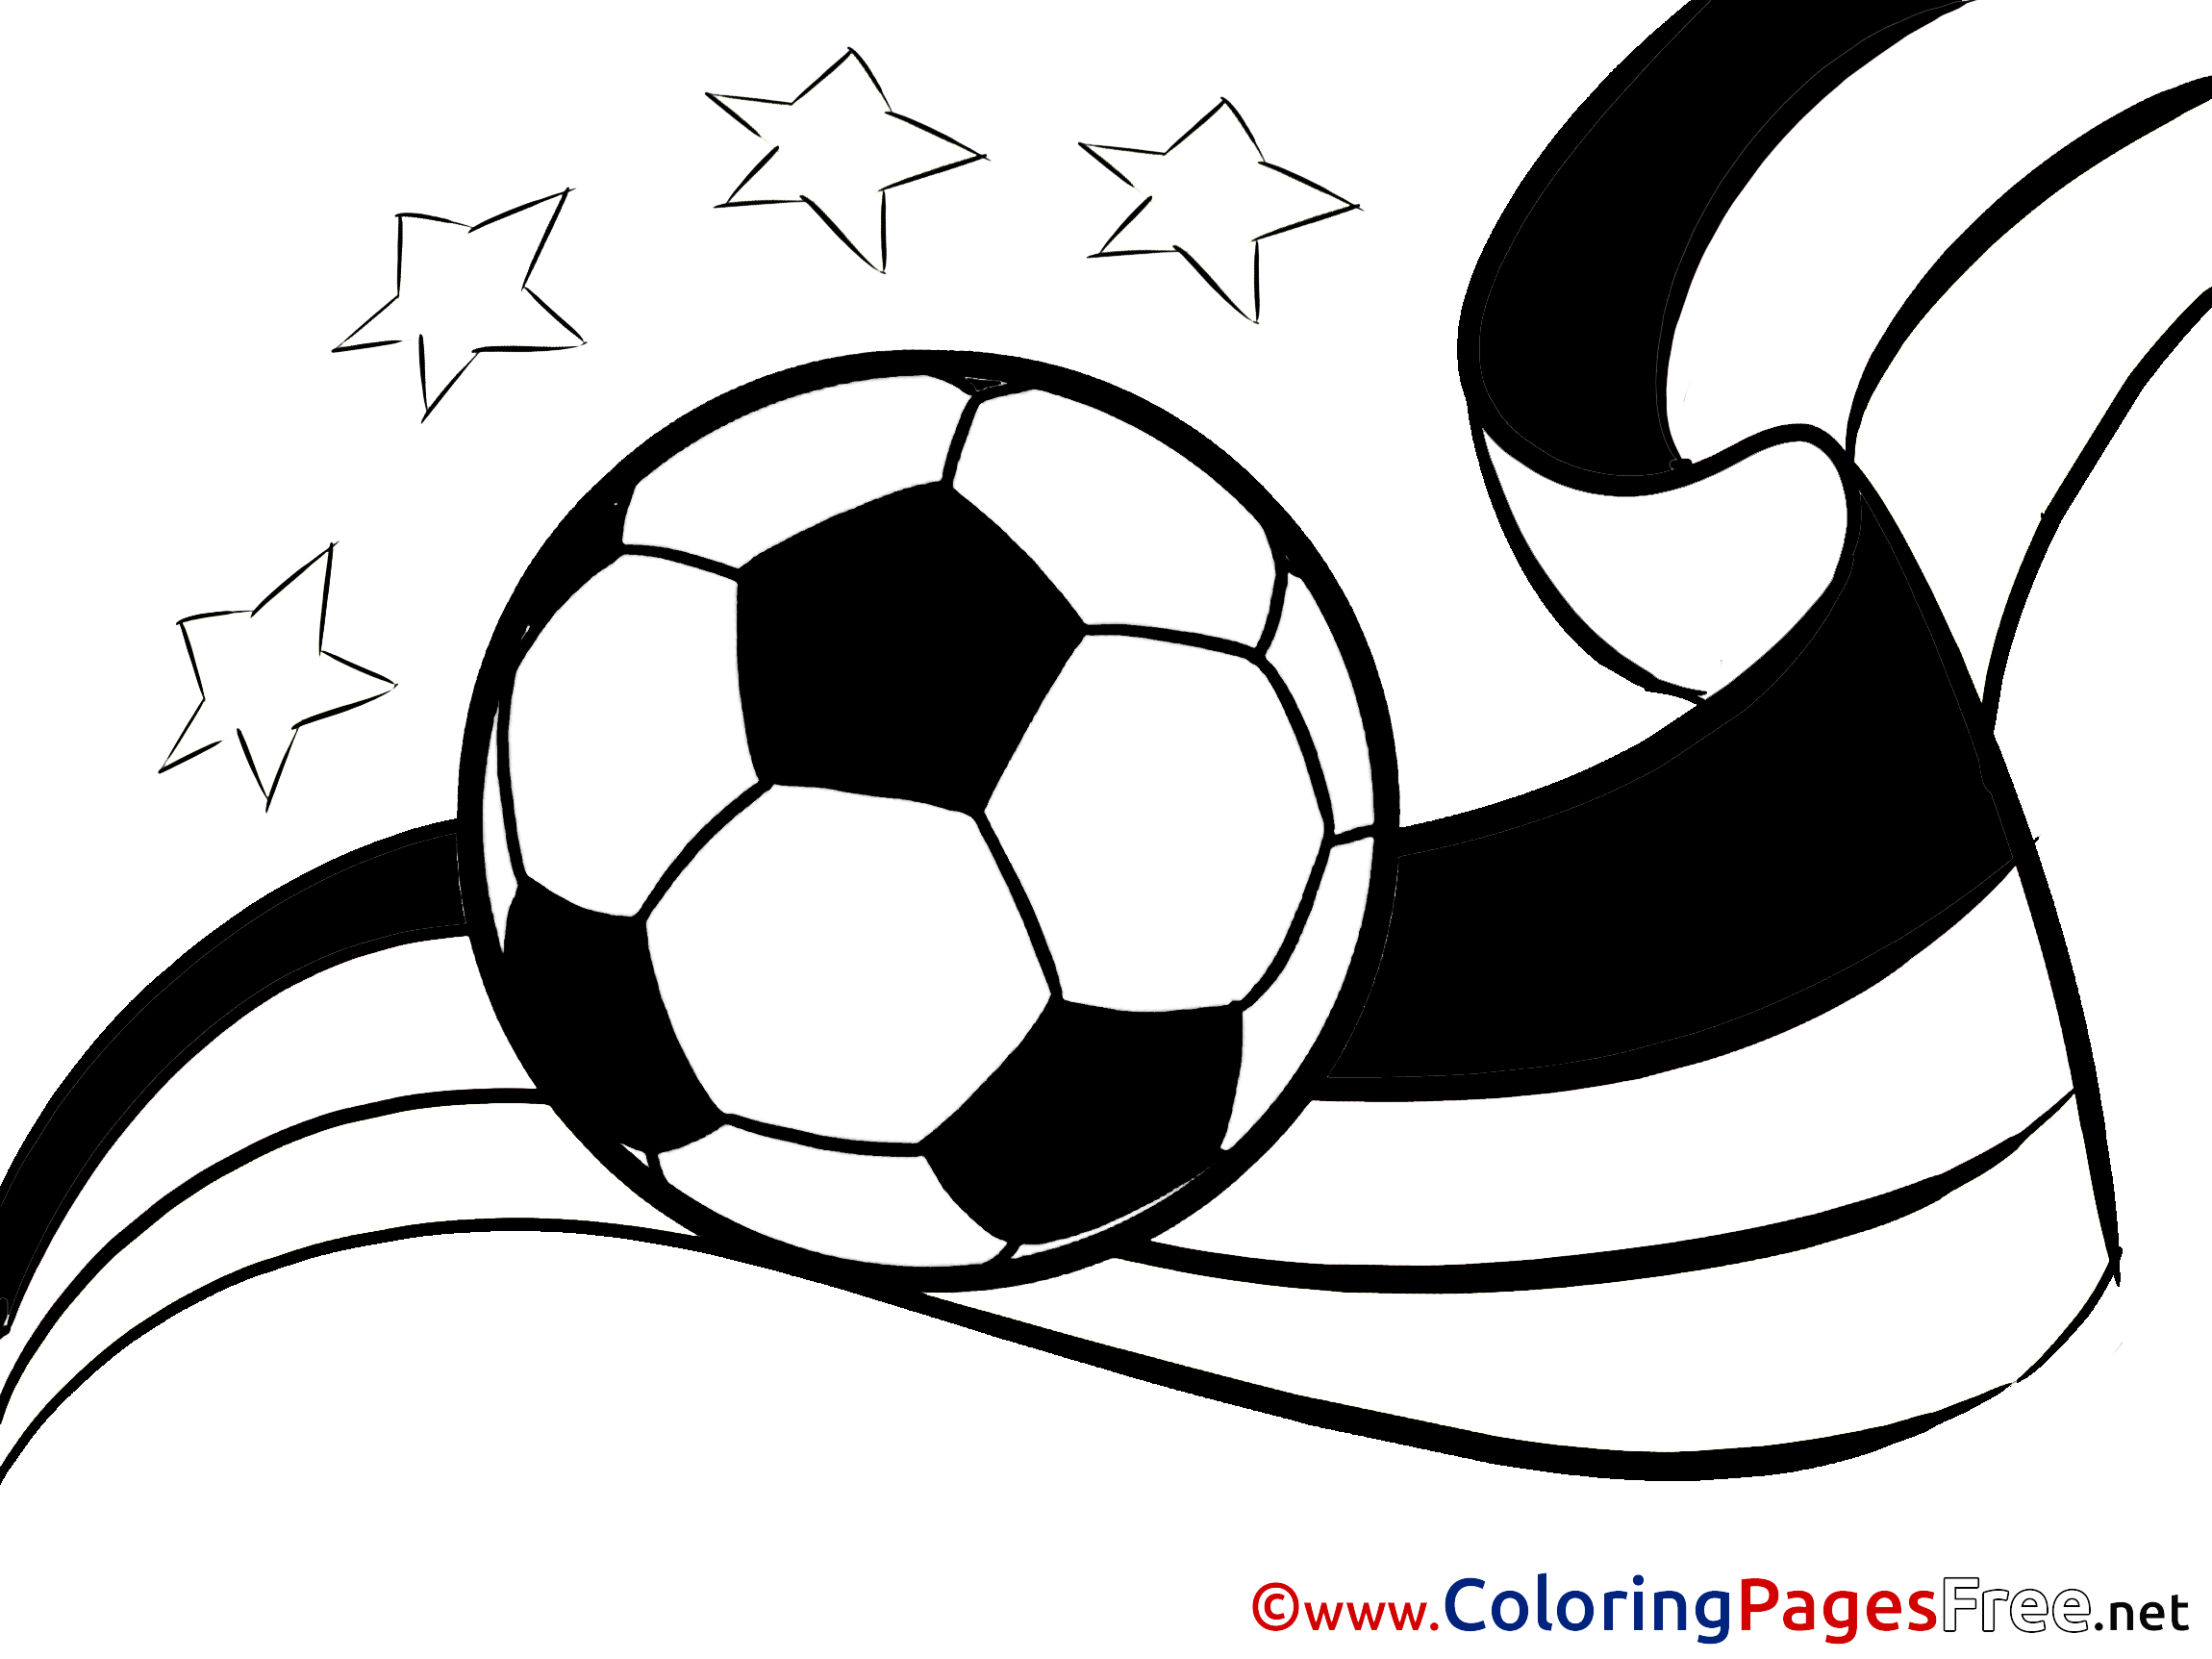 soccer flags coloring pages - photo#11